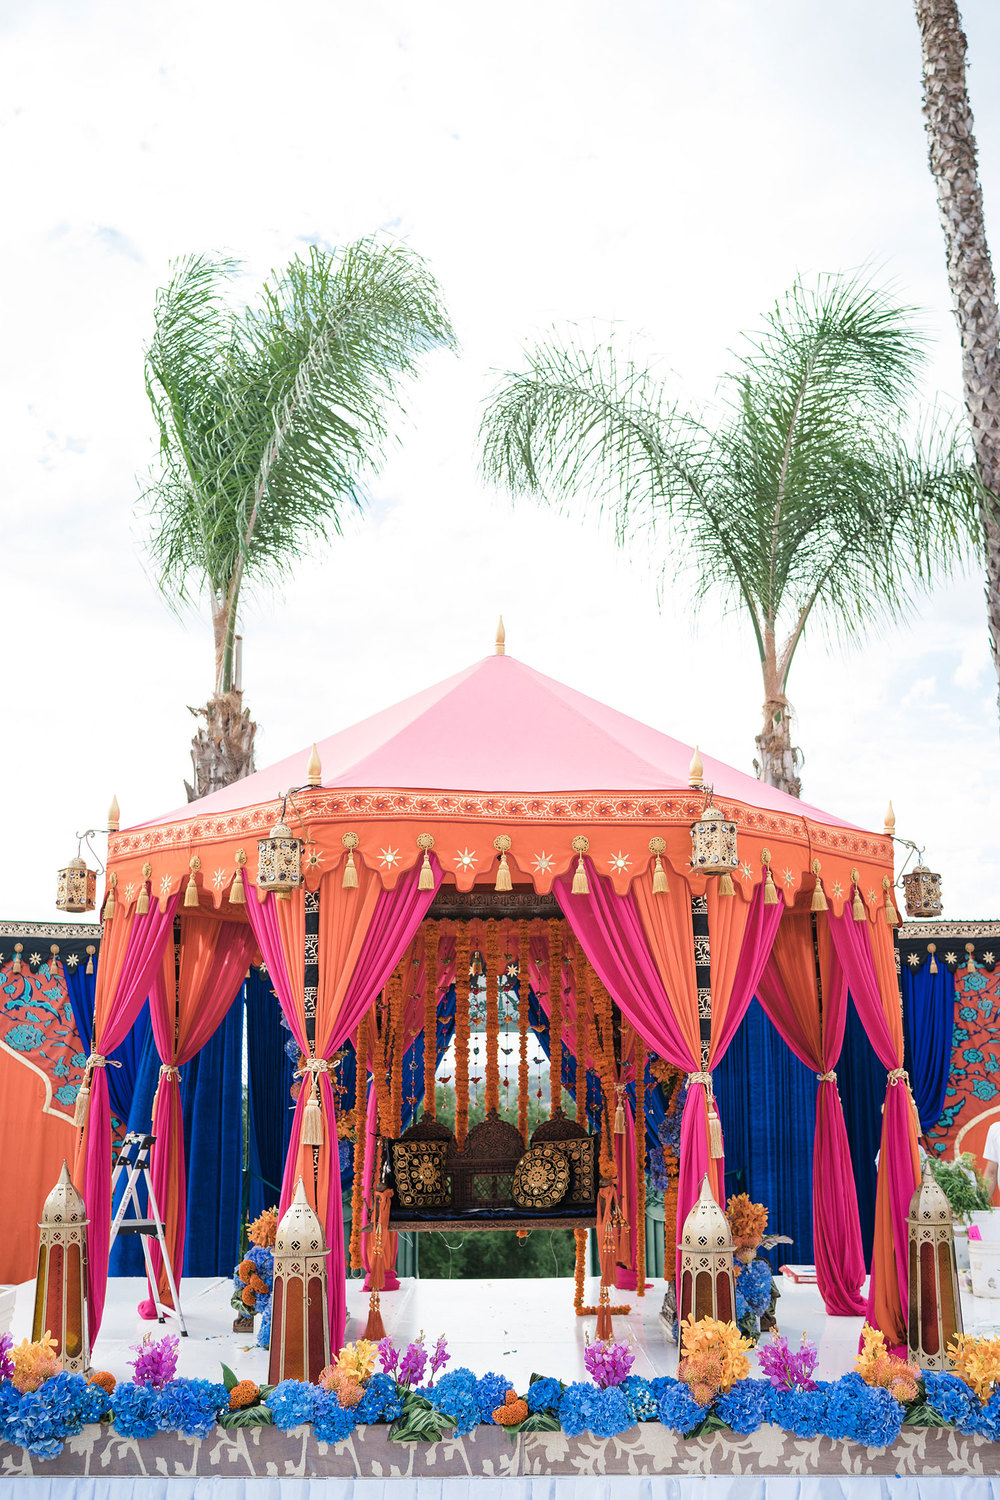 raj-tents-colorful-pavilion.jpg